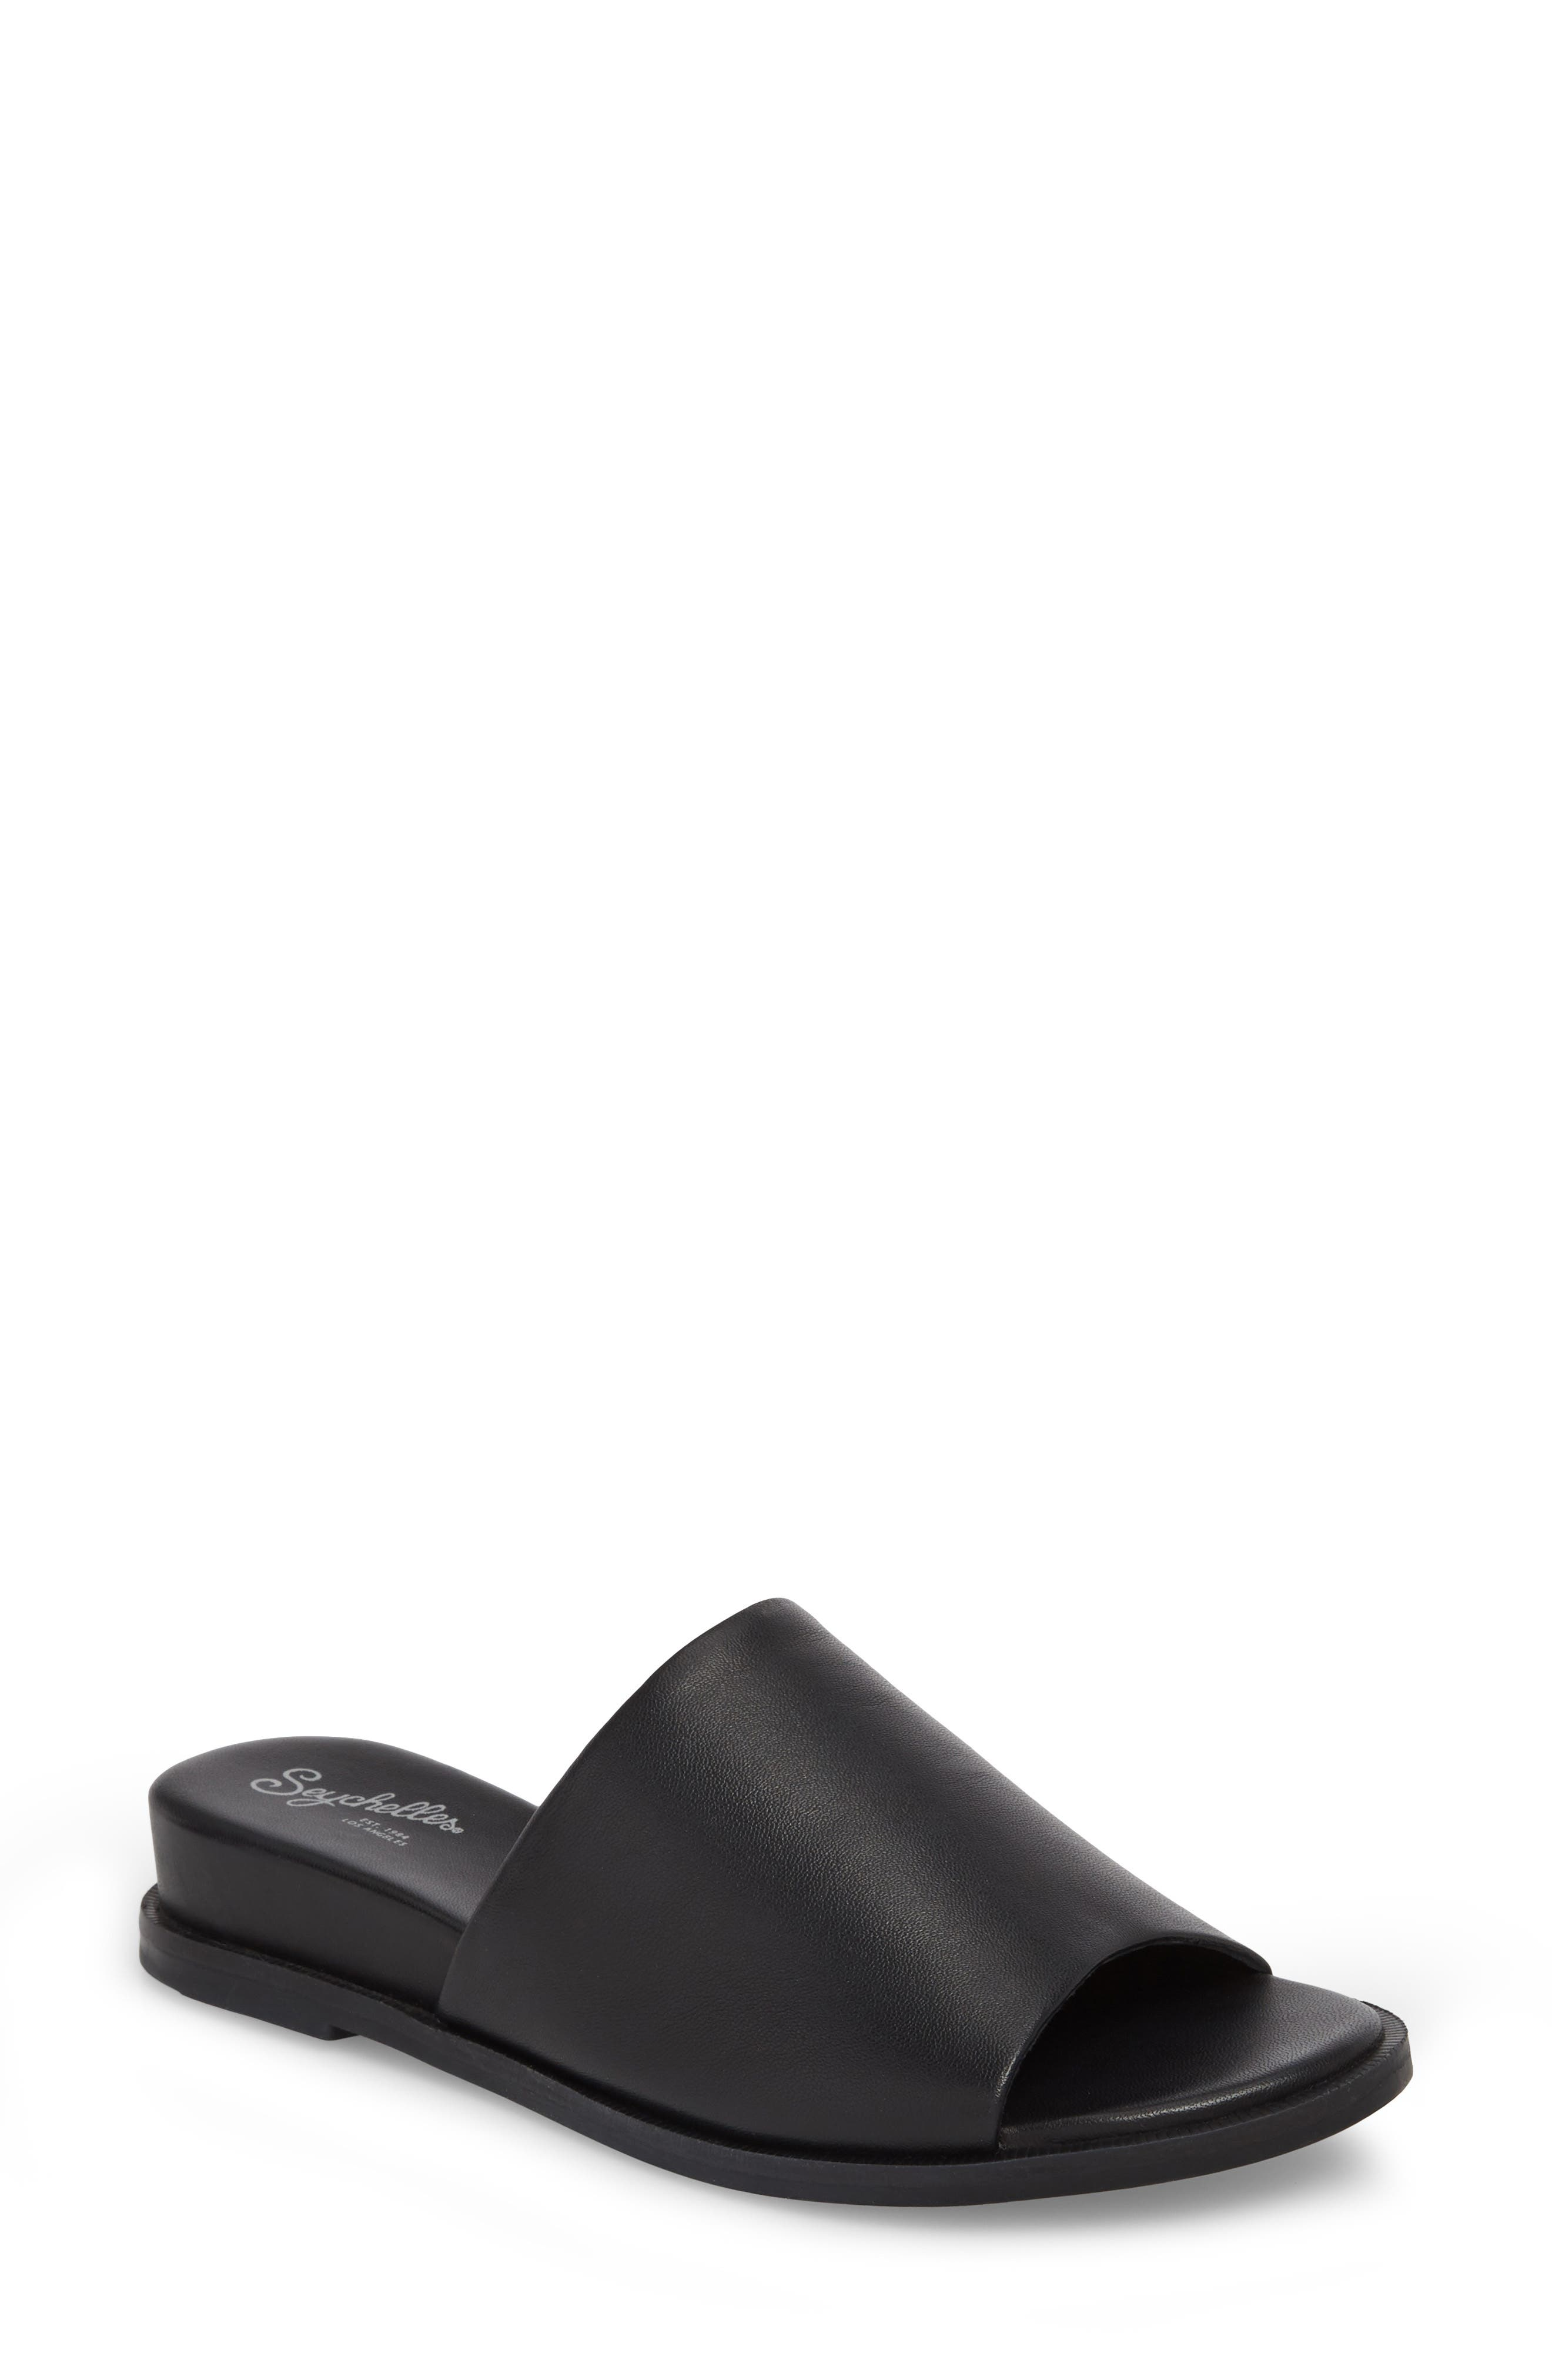 Relaxing Wedge Slide Sandal,                         Main,                         color, 001